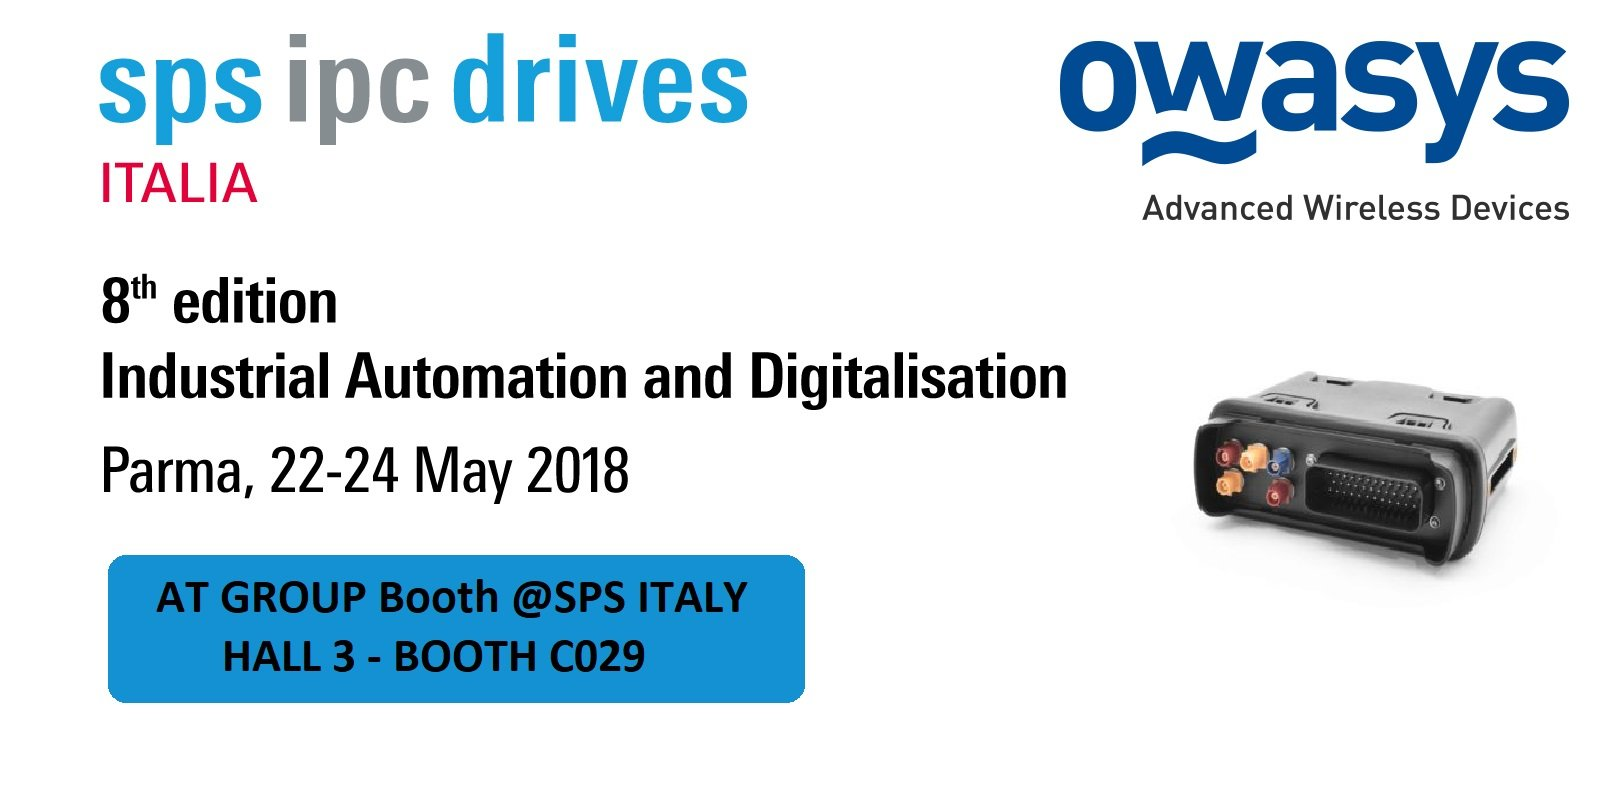 Owasys will be exhibiting at the SPS IPC Drives 2018 in Parma presenting the new Linux embedded platform, owa4X